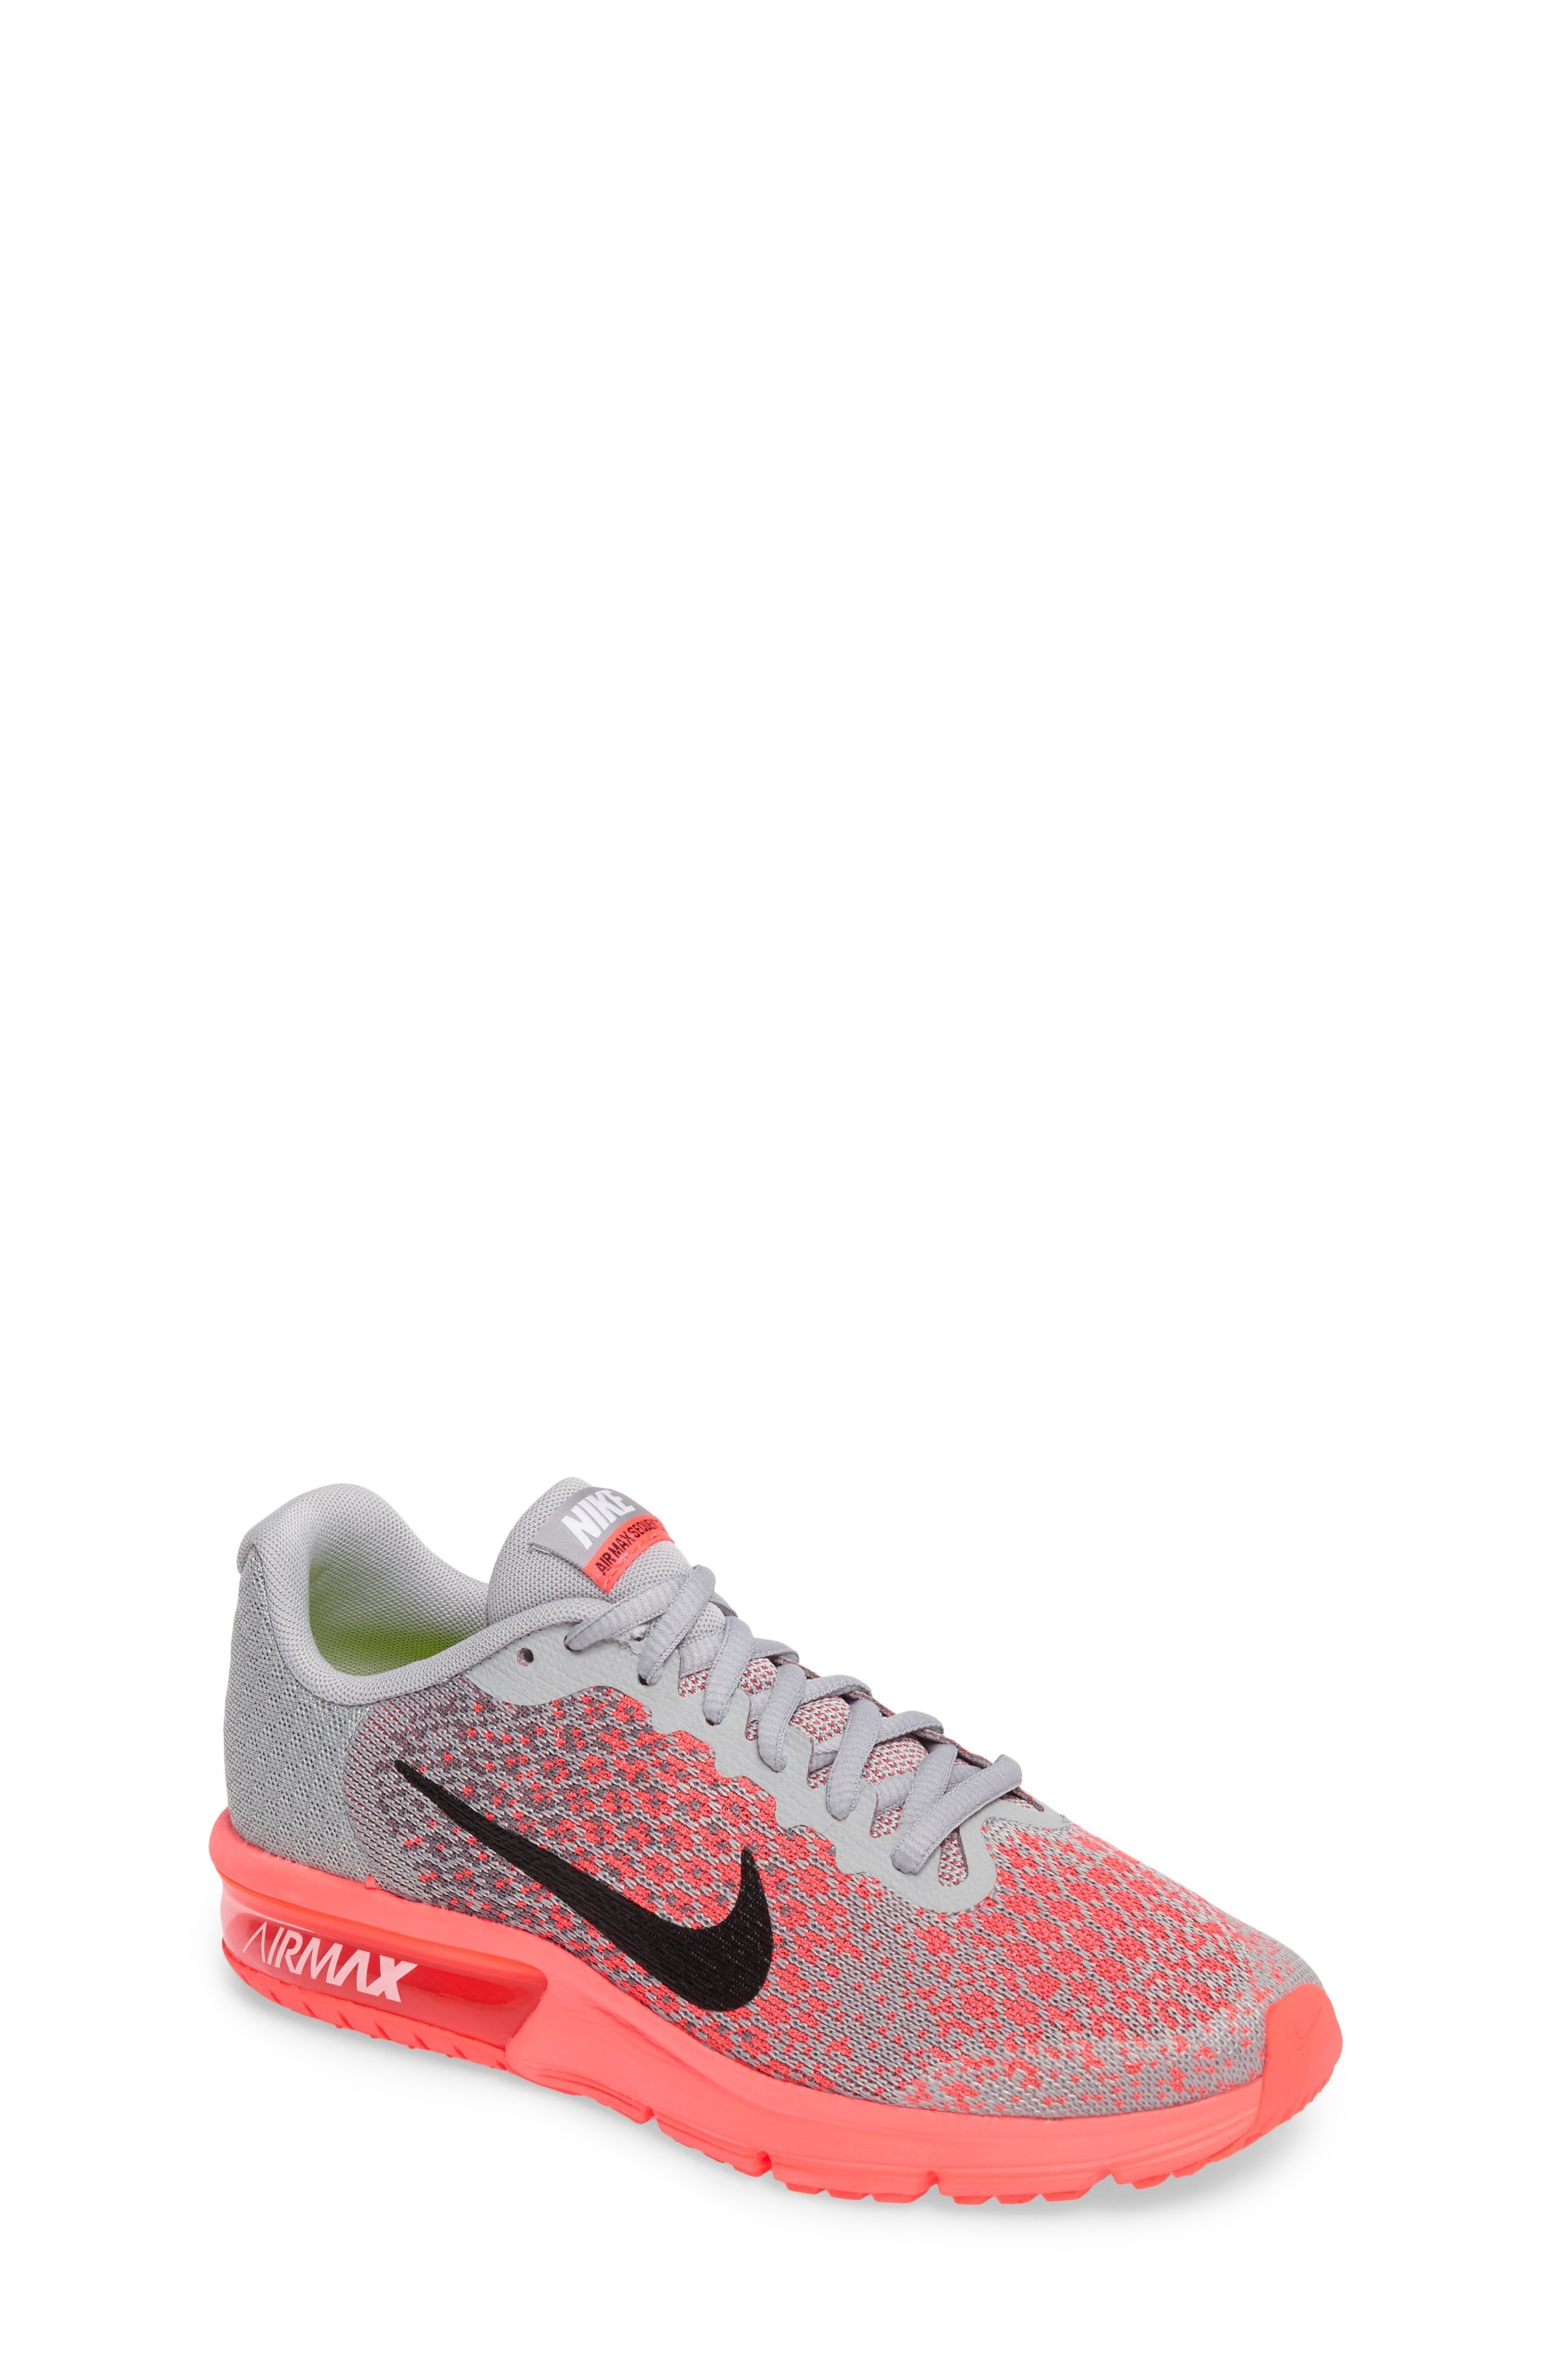 関税送料込みNike Air Max Sequent 2 Sneaker (Big Kid) 人気